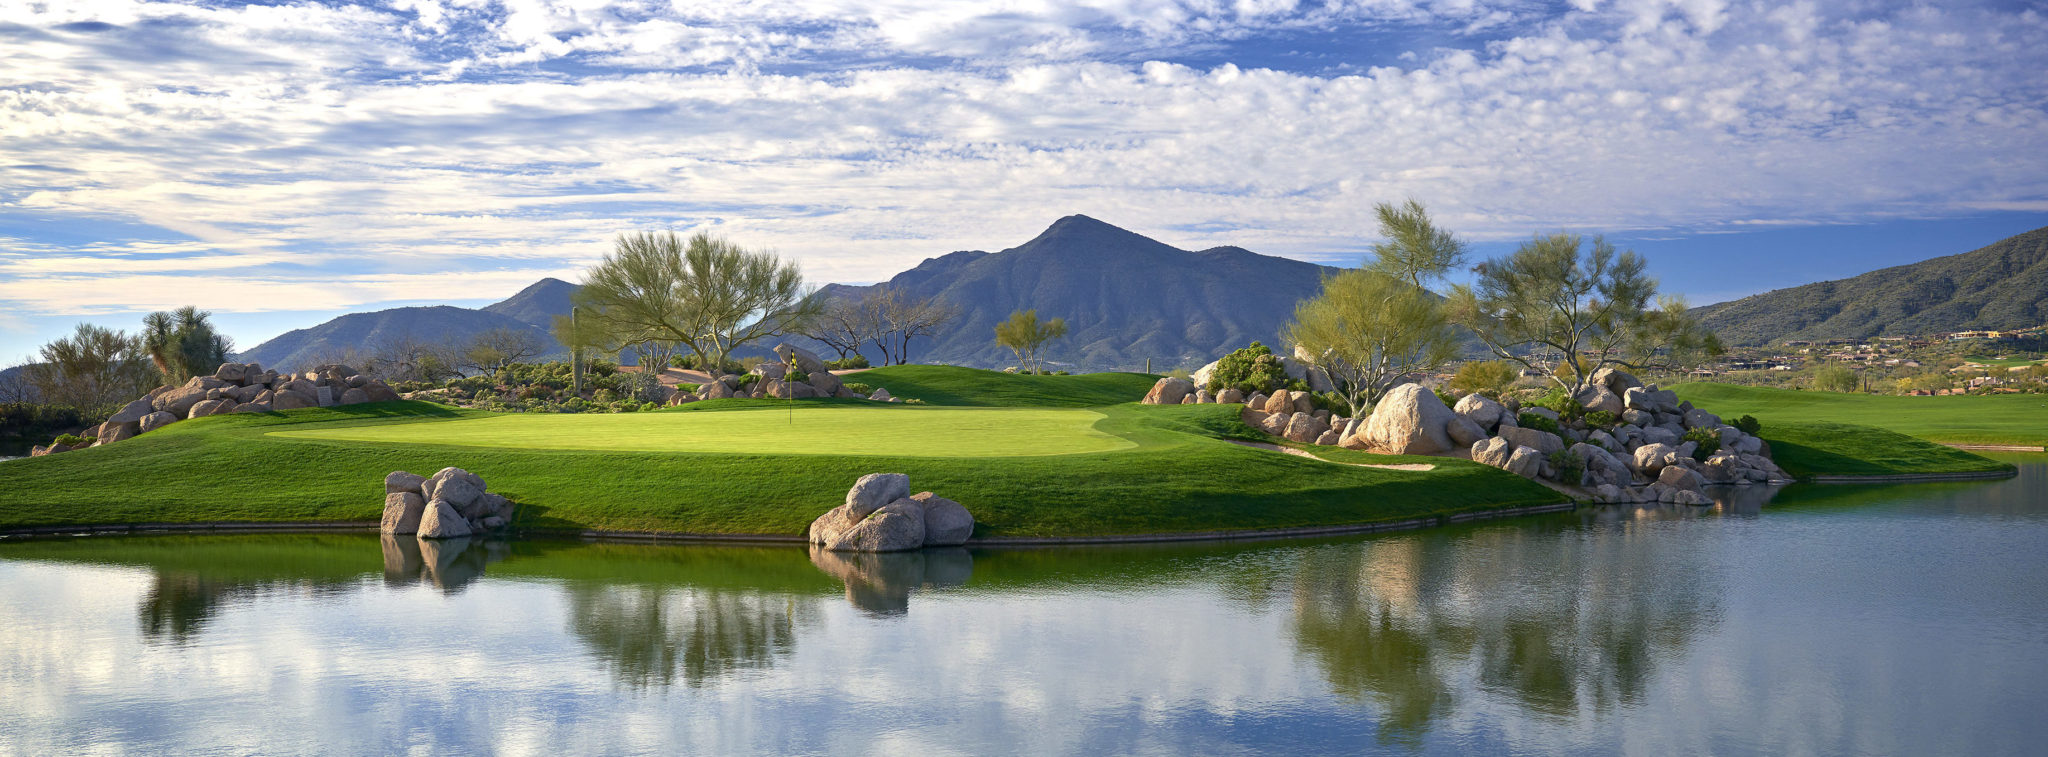 Desert_Mountain_Golf